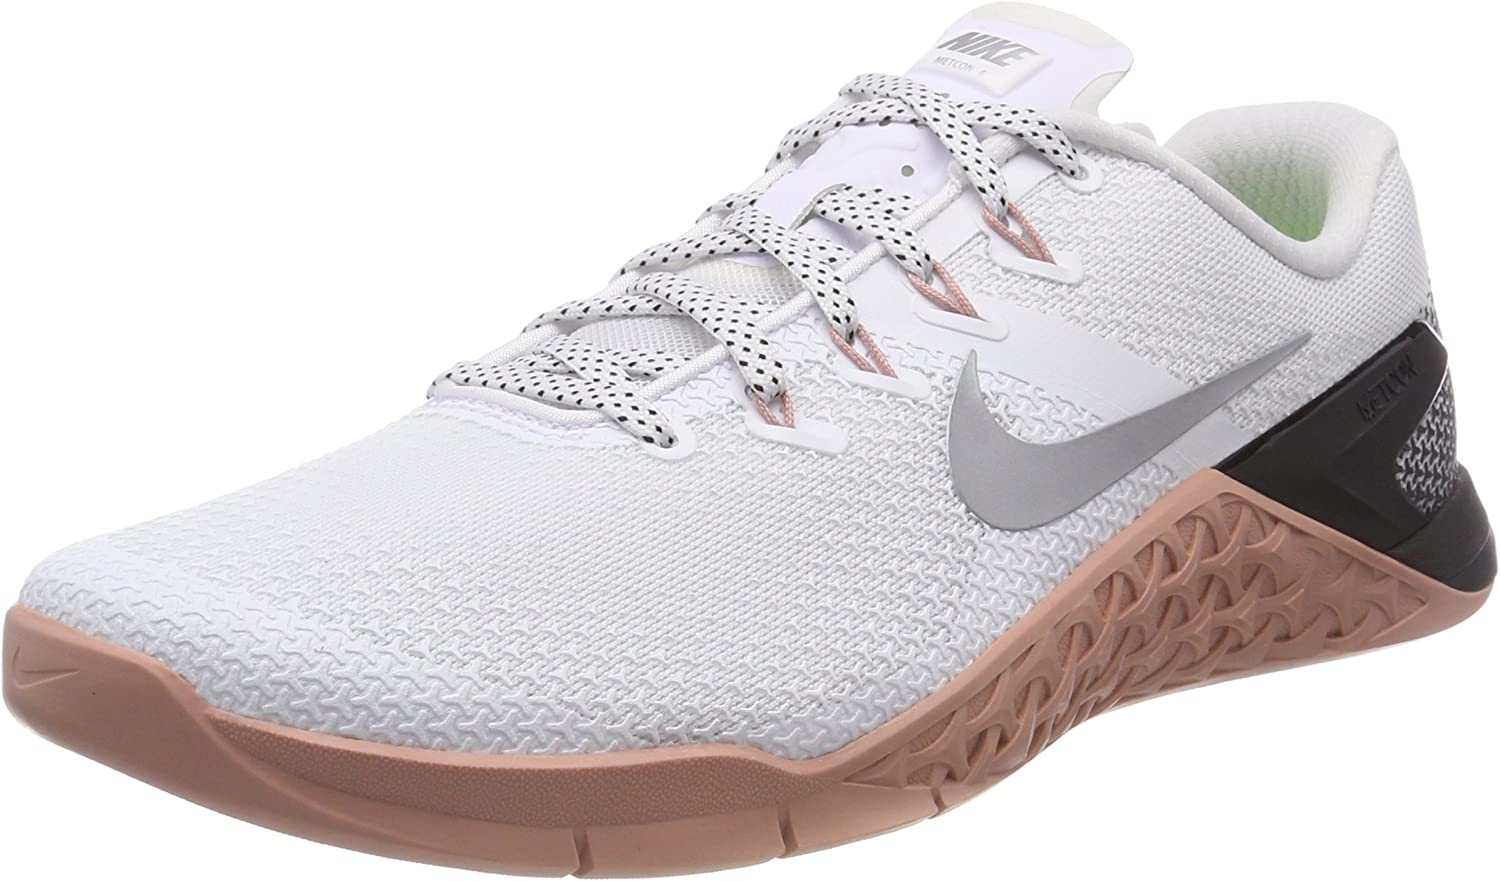 Nike Oakland Mall Women's New product! New type Metcon 4 White Silver Ankle-High Metallic Cross Tra